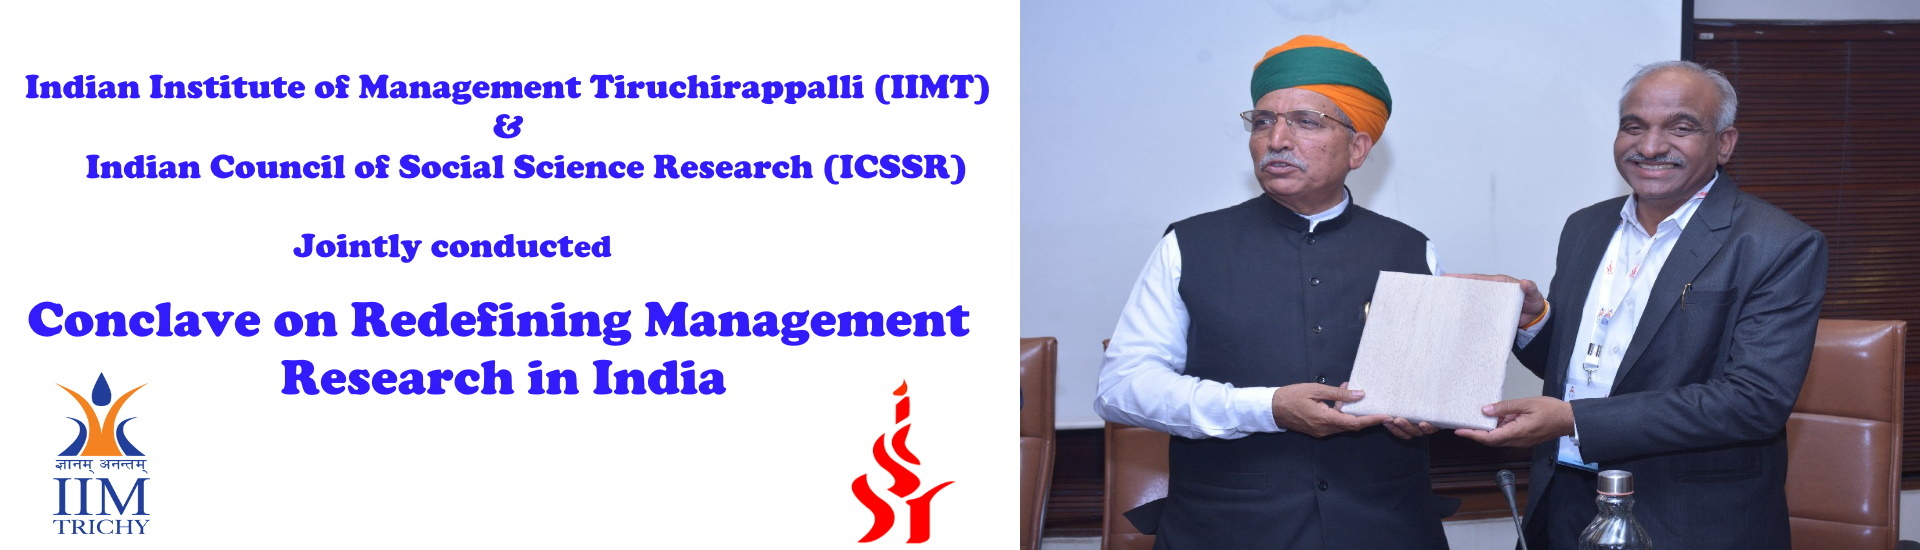 Conclave on Redefining Management Research in India